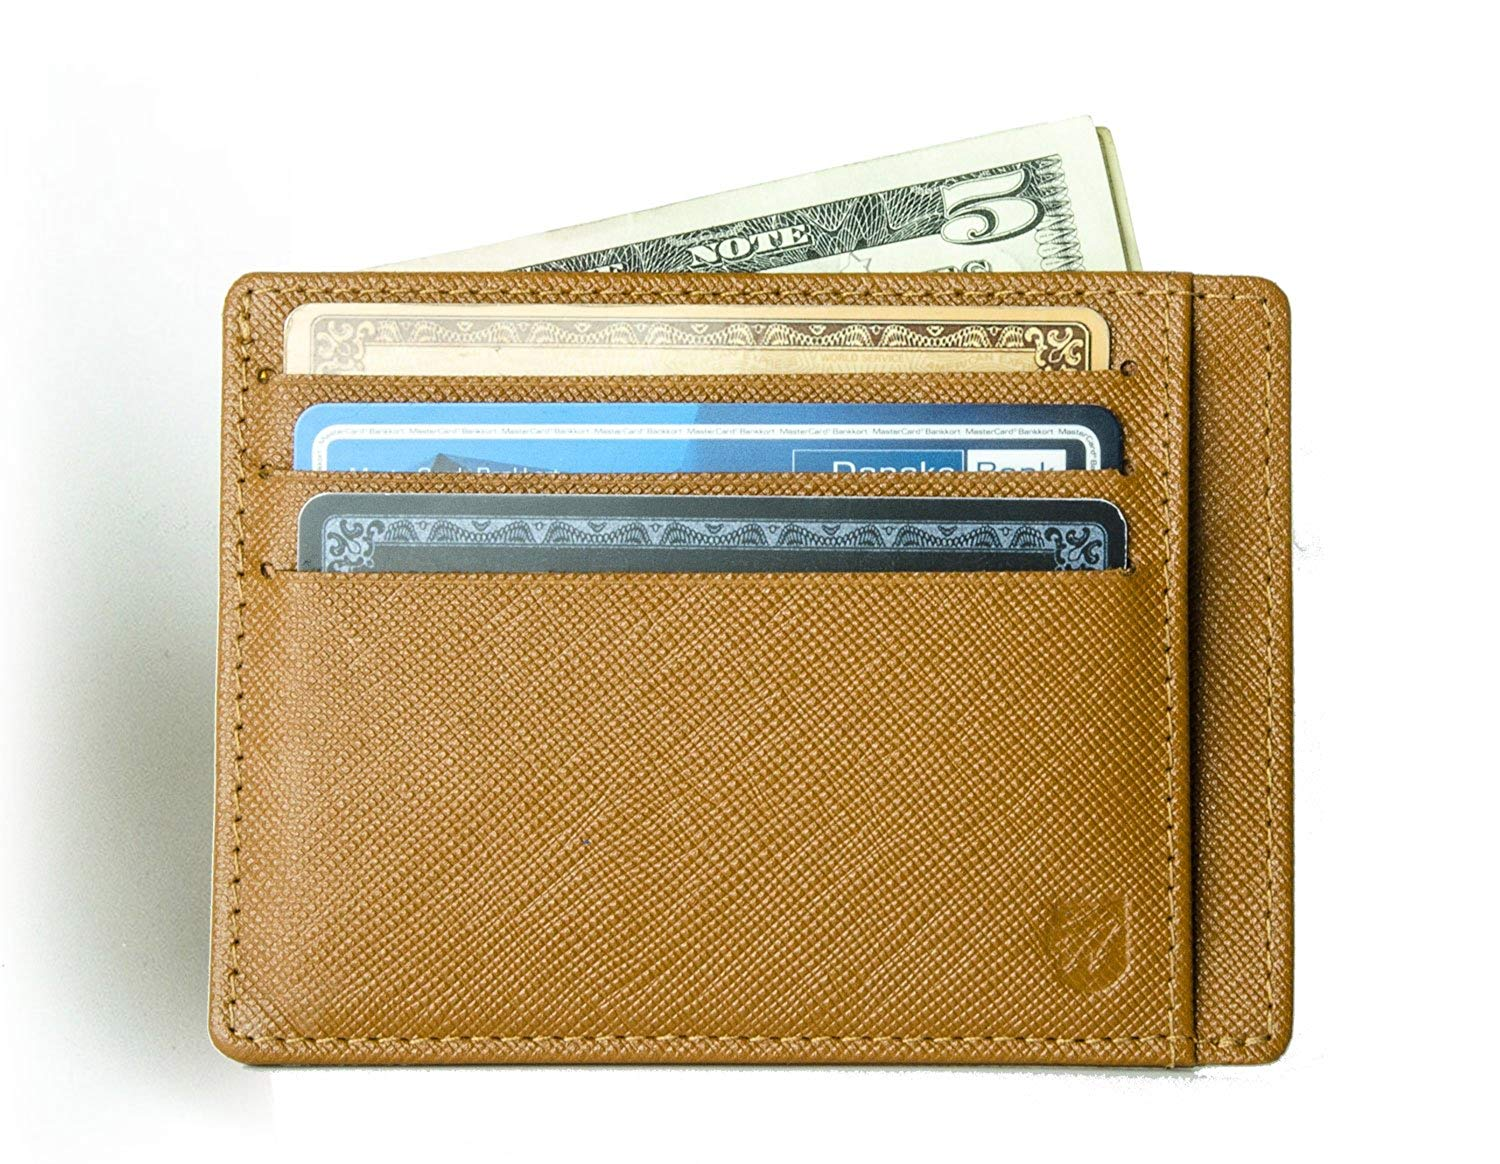 08f2074624e5 Get Quotations · Saffiano leather RFID front pocket wallet from Axess  (men's minimalist wallet)